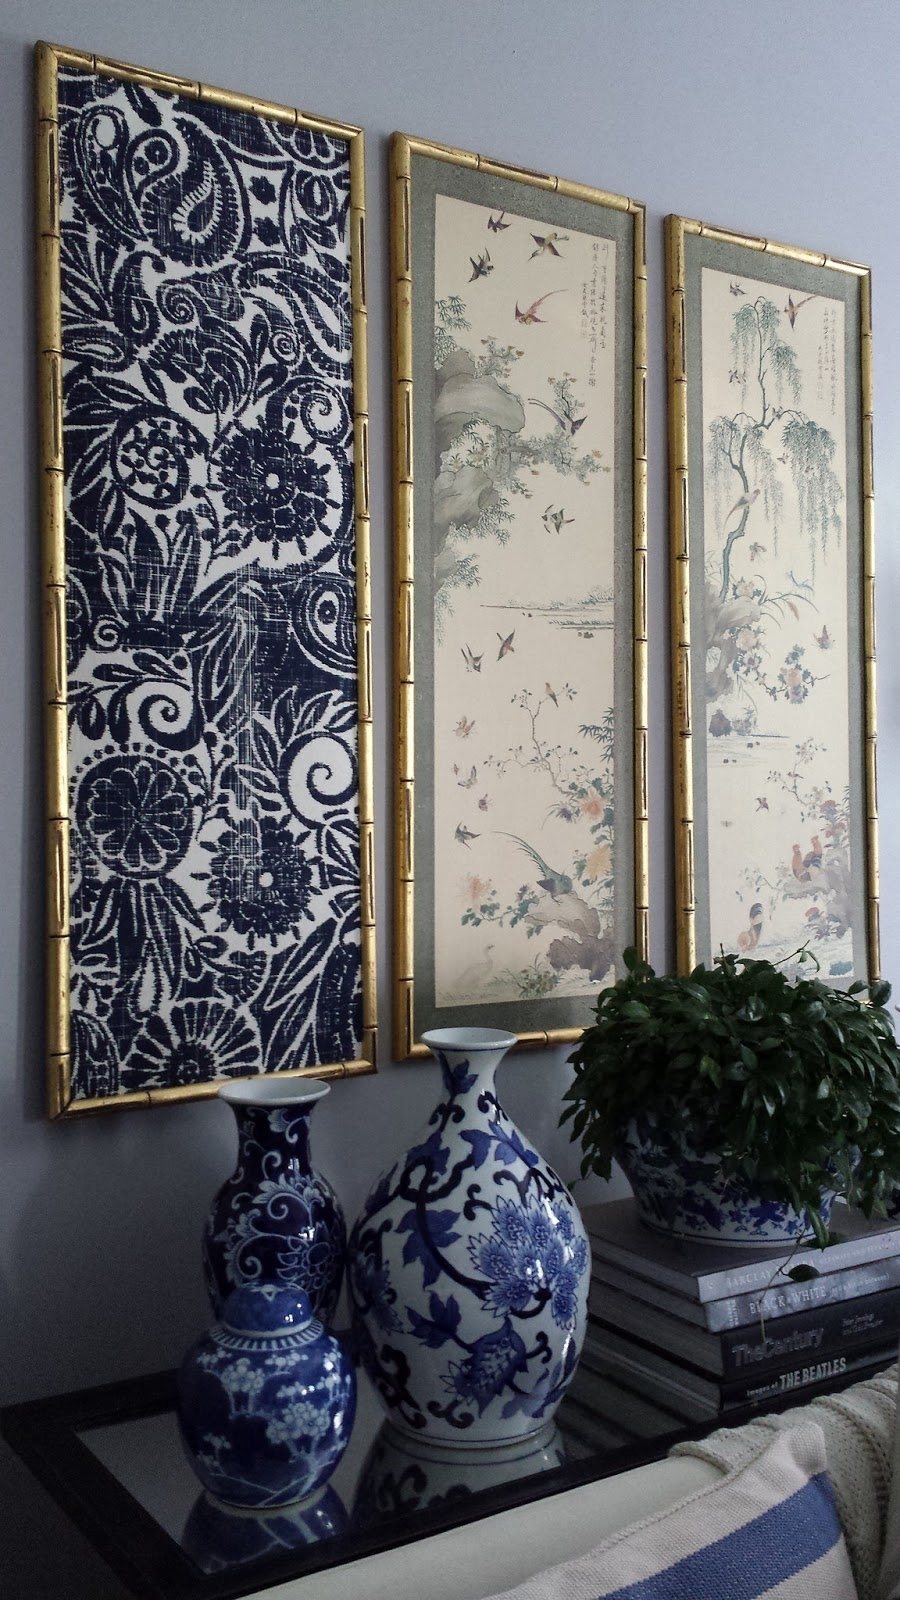 Focal Point Styling: Diy Indigo Wall Art With Framed Fabric Regarding Current Diy Large Fabric Wall Art (View 11 of 15)